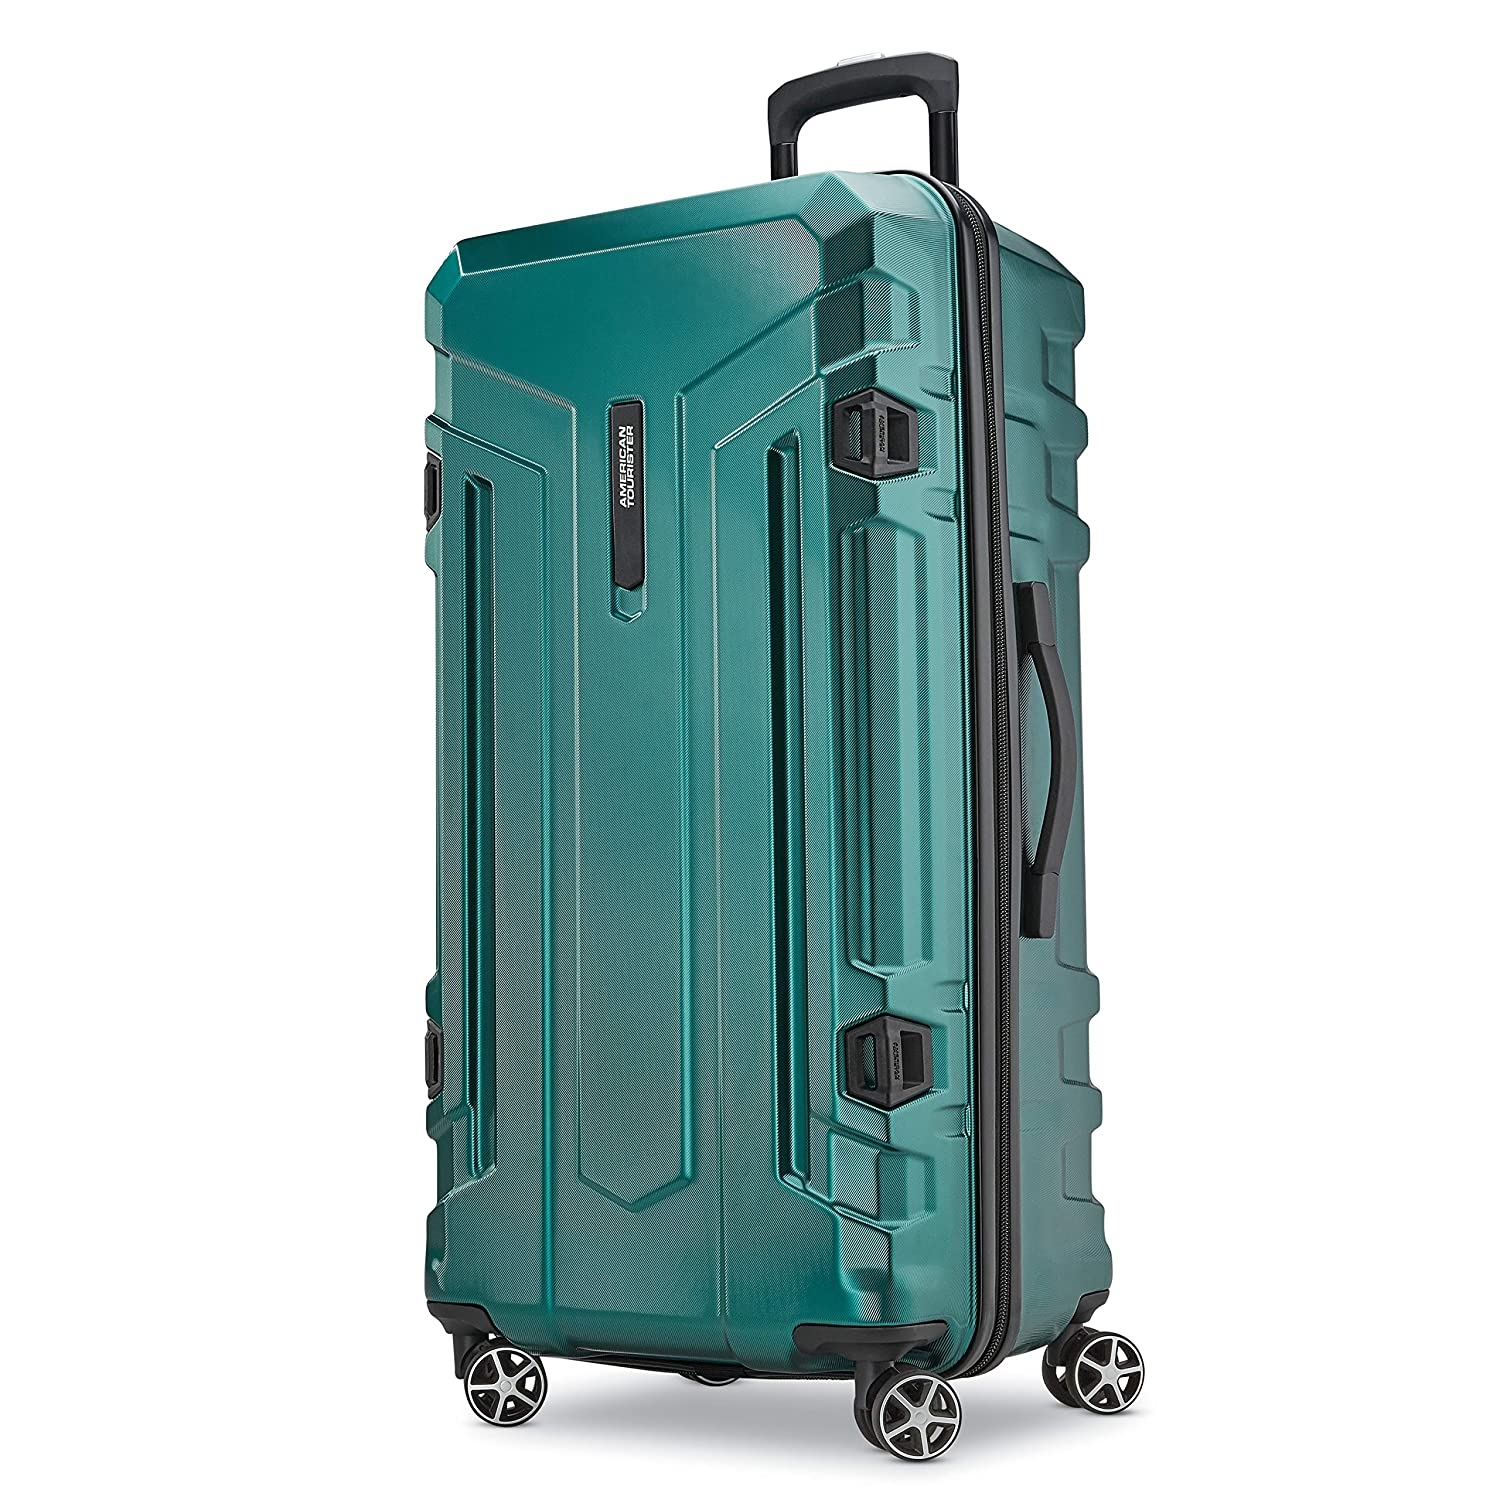 1a95bc87ffab American Tourister Trip Locker Hardside Checked Luggage with Dual Spinner  Wheels